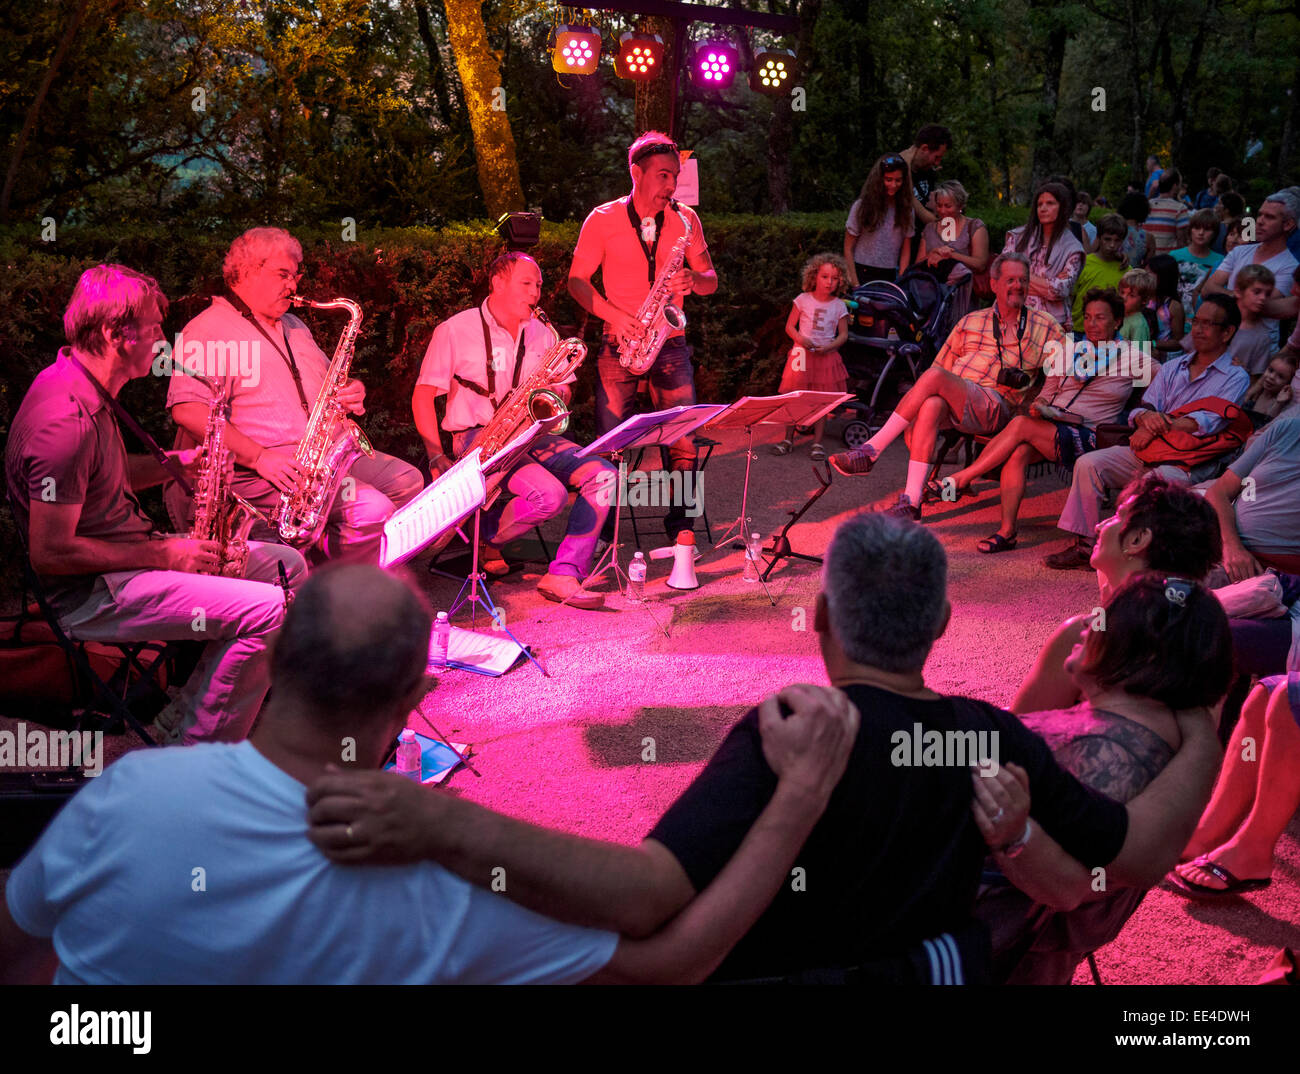 Visitors to a candlelight night at the gardens of Chateau Marqueyssac listen to the saxophone quartet Flexi-Sax - Stock Image